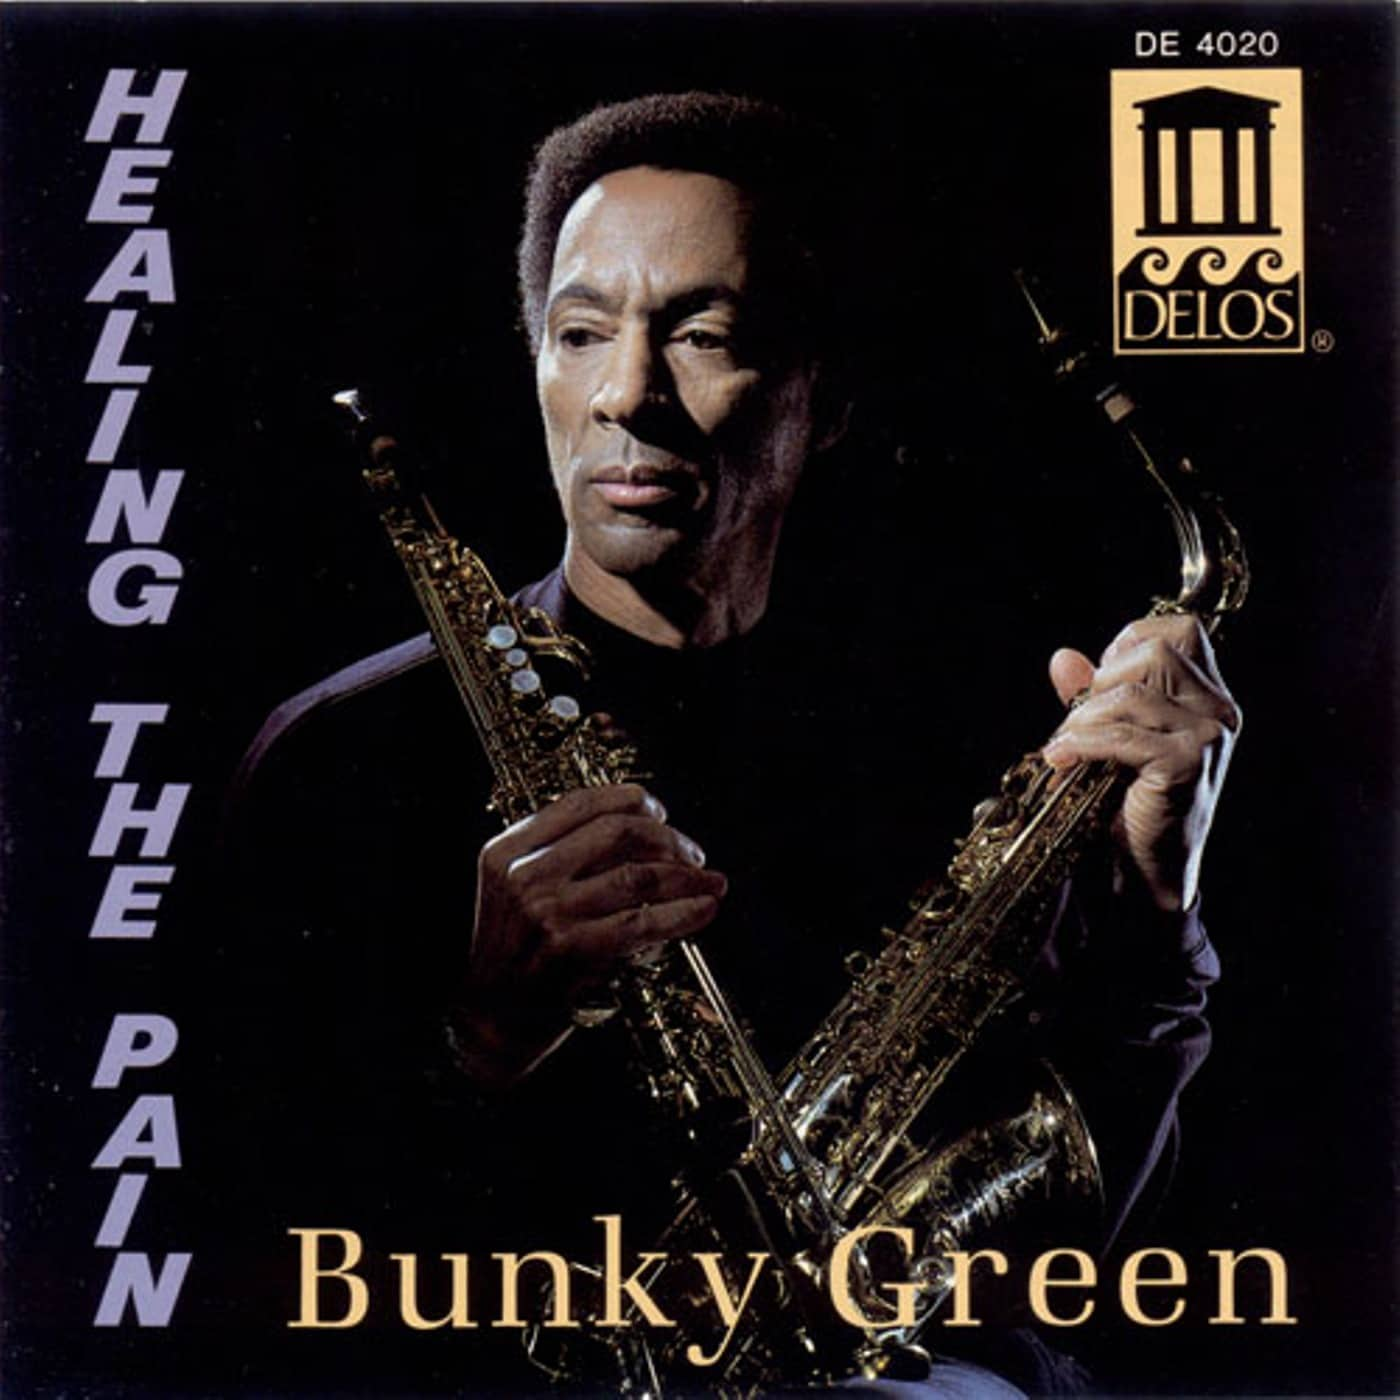 Healing the Pain - Bunky Green